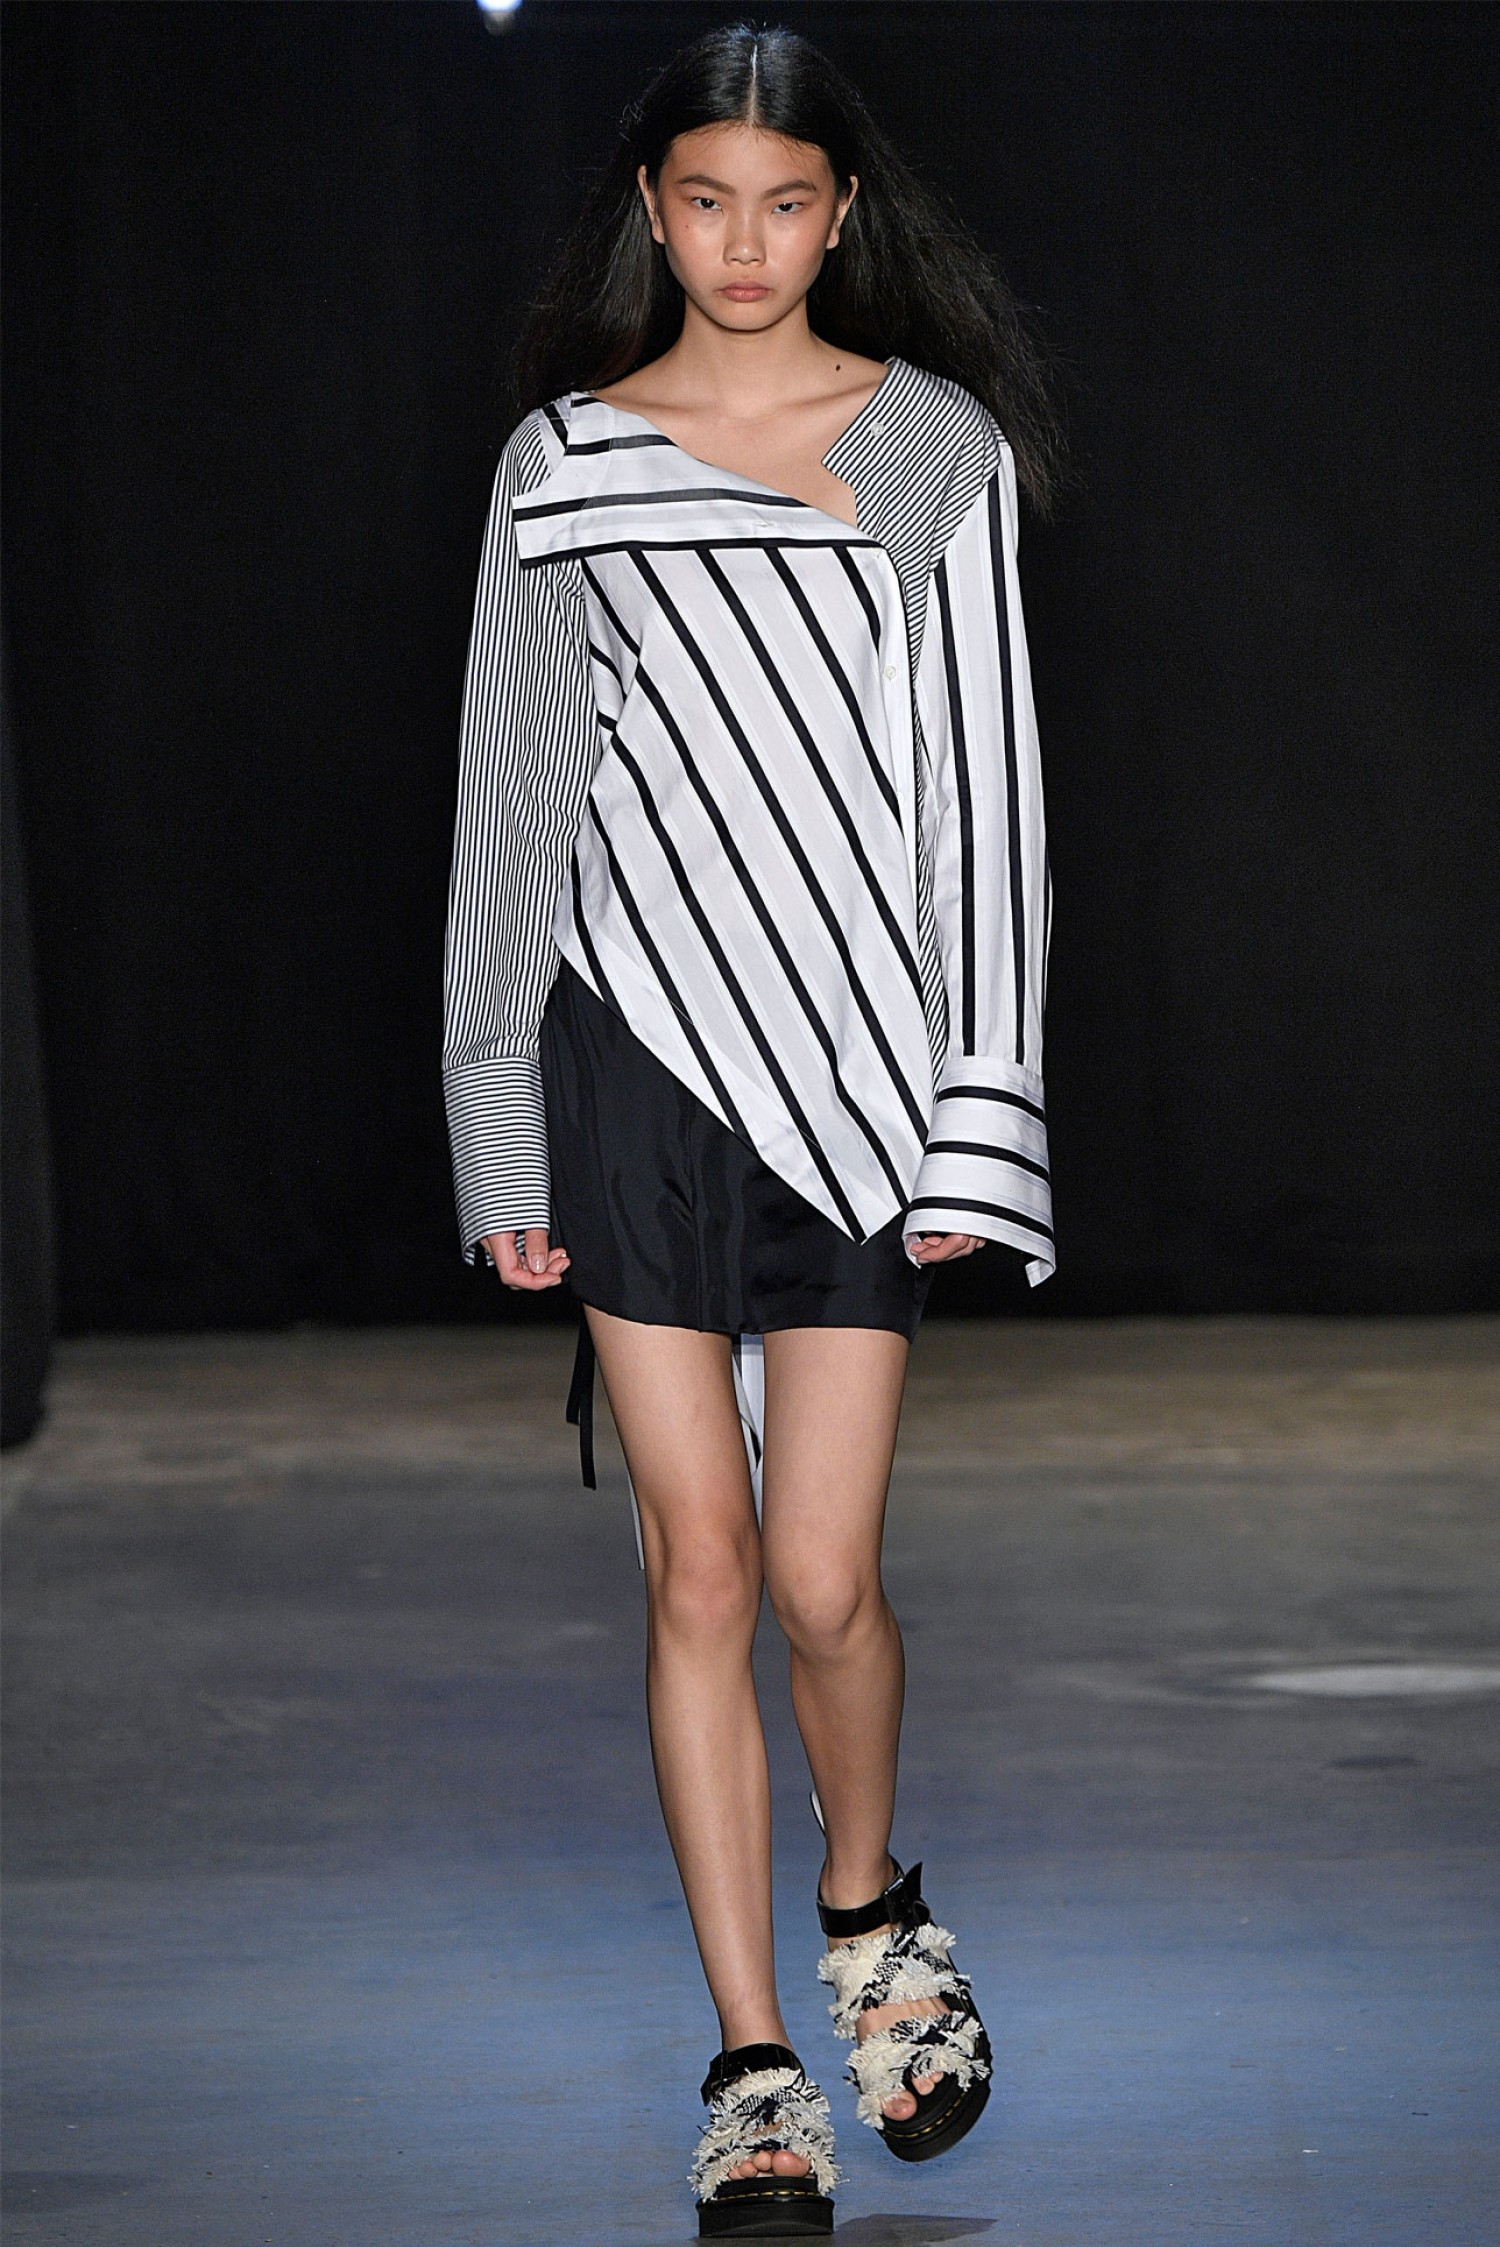 MONSE Falling Contrast Stripes Shirt on Model Runway View